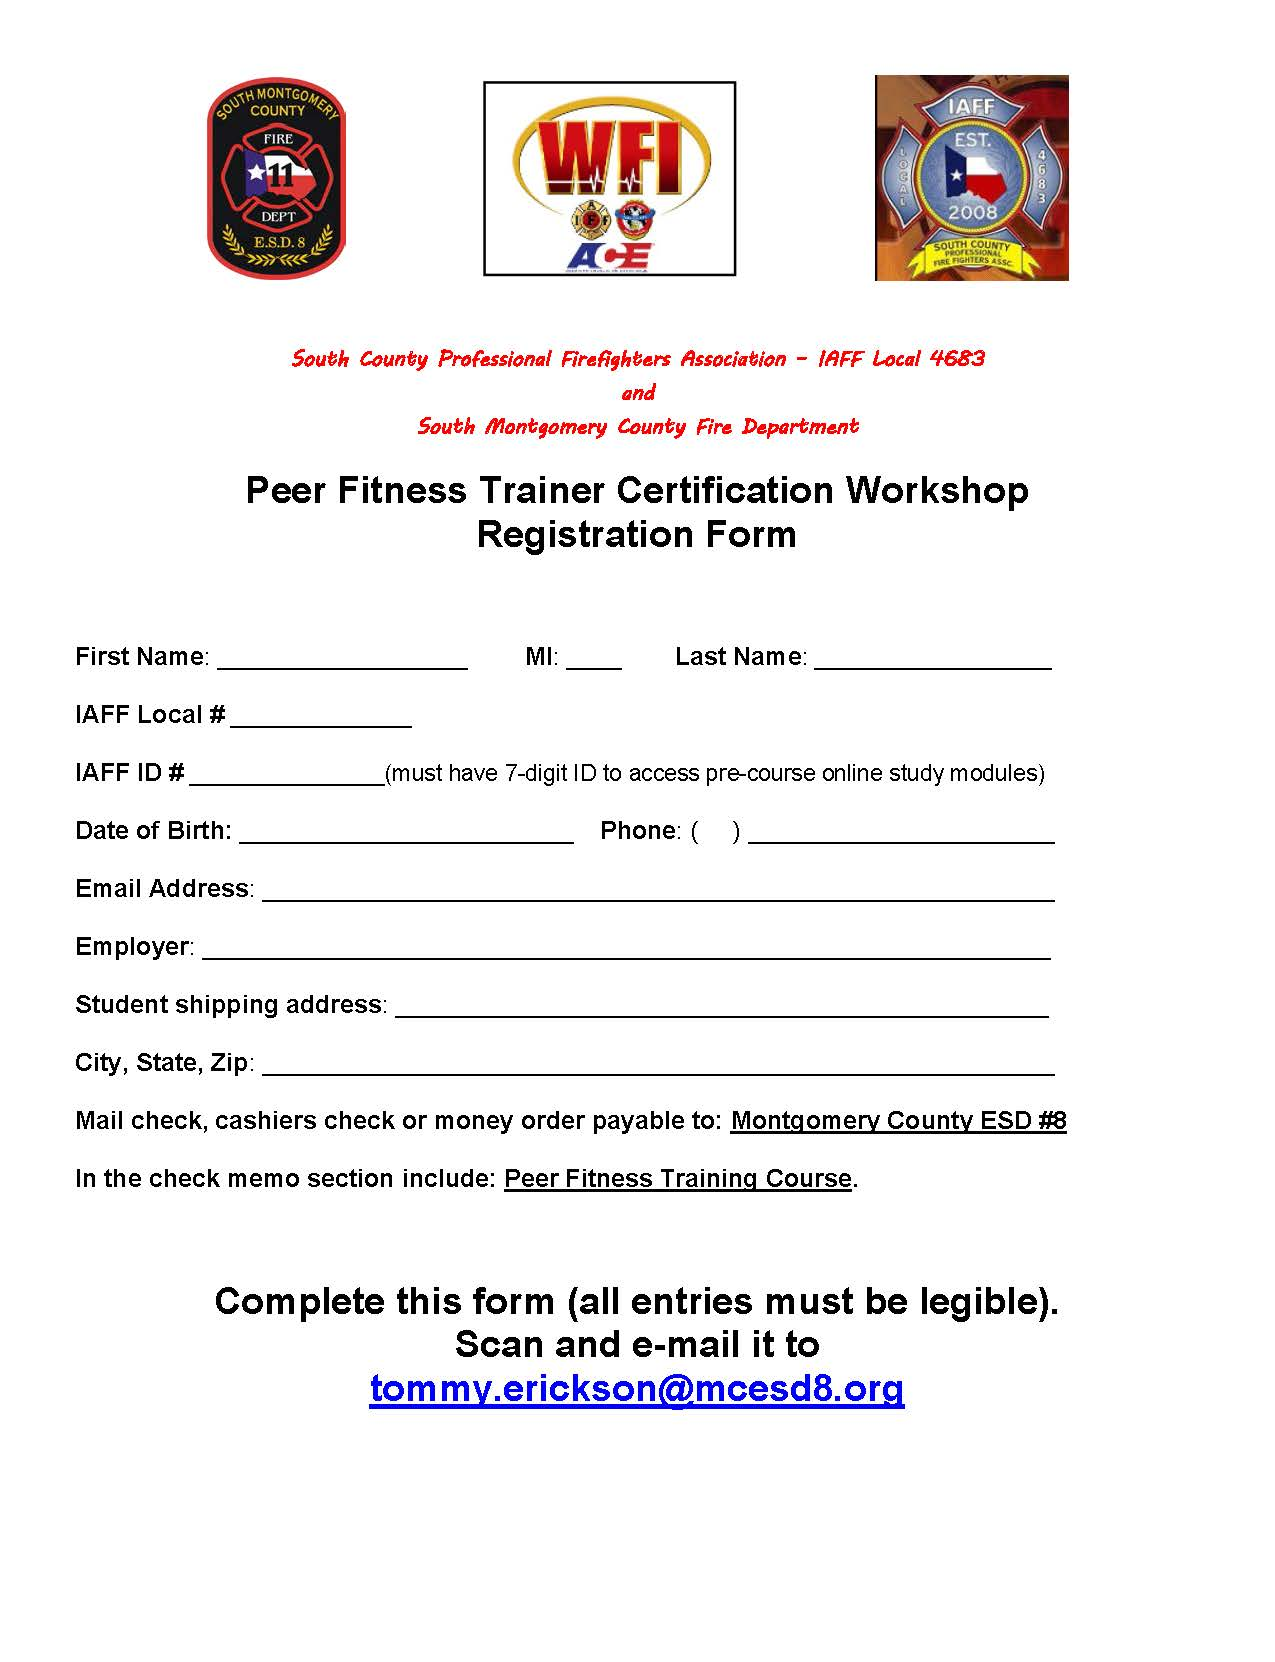 South county fire department peer fitness trainer certification workshop xflitez Choice Image